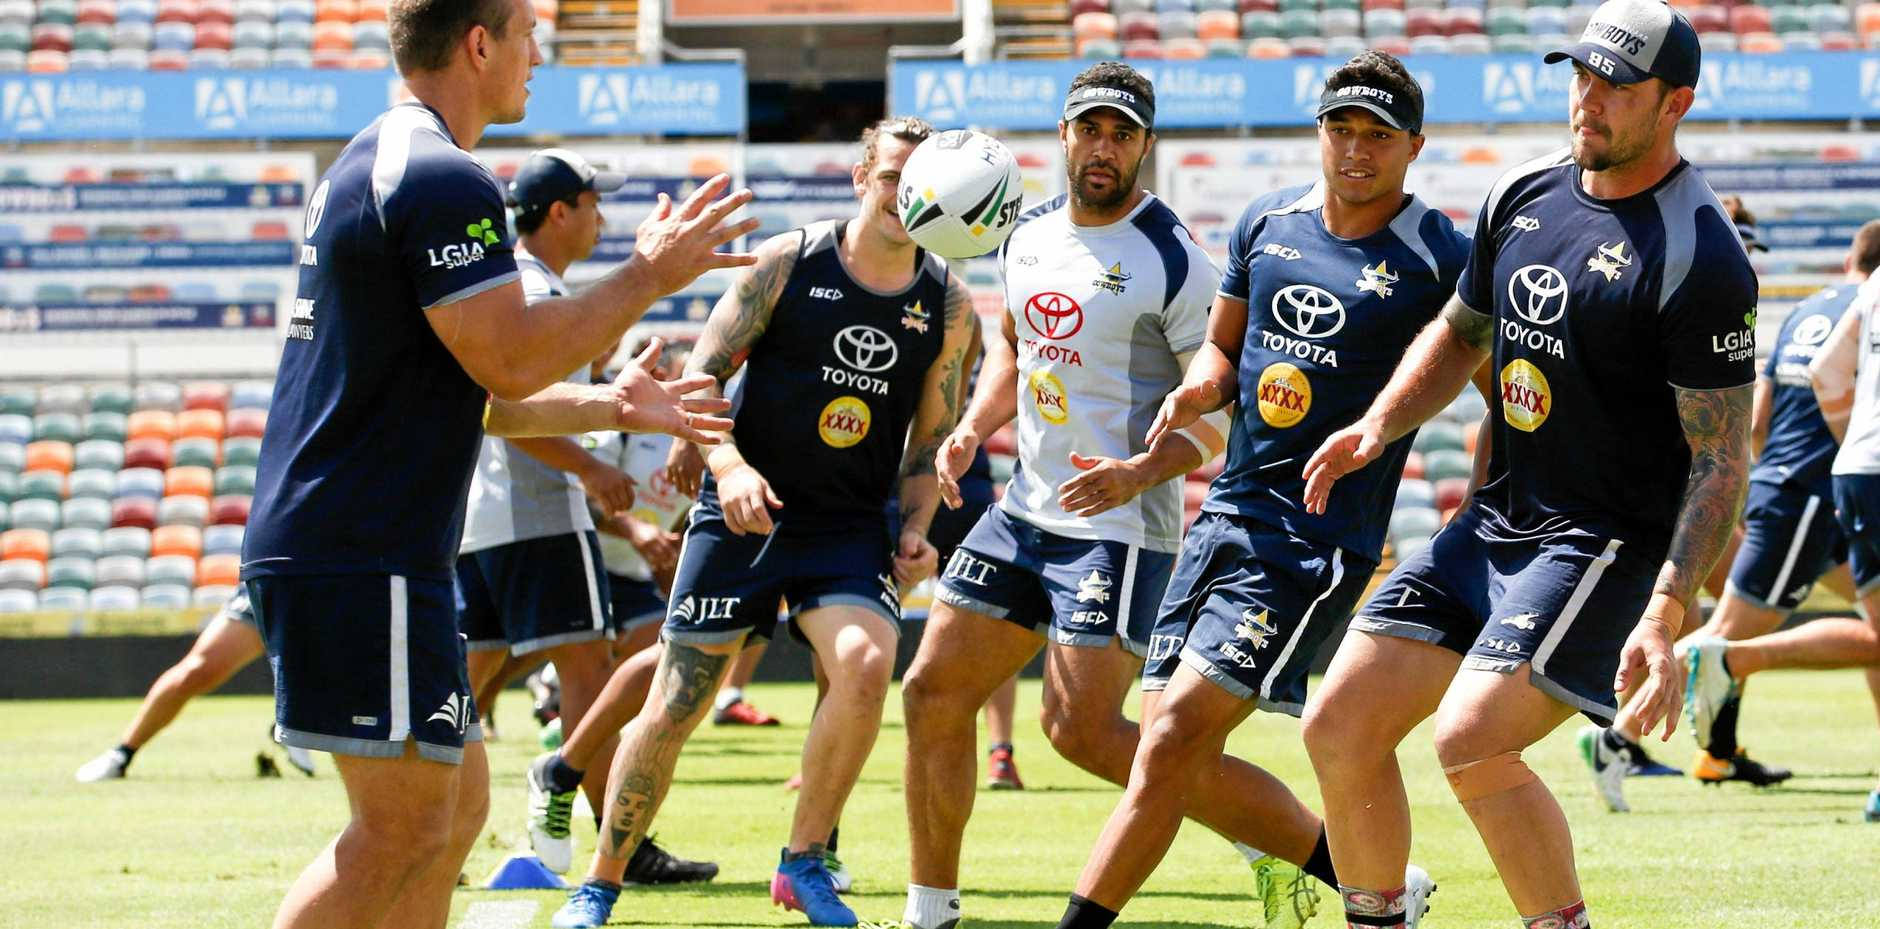 North Queensland Cowboys players go through their paces at training in Townsville ahead of their preliminary final against the Sydney Roosters.